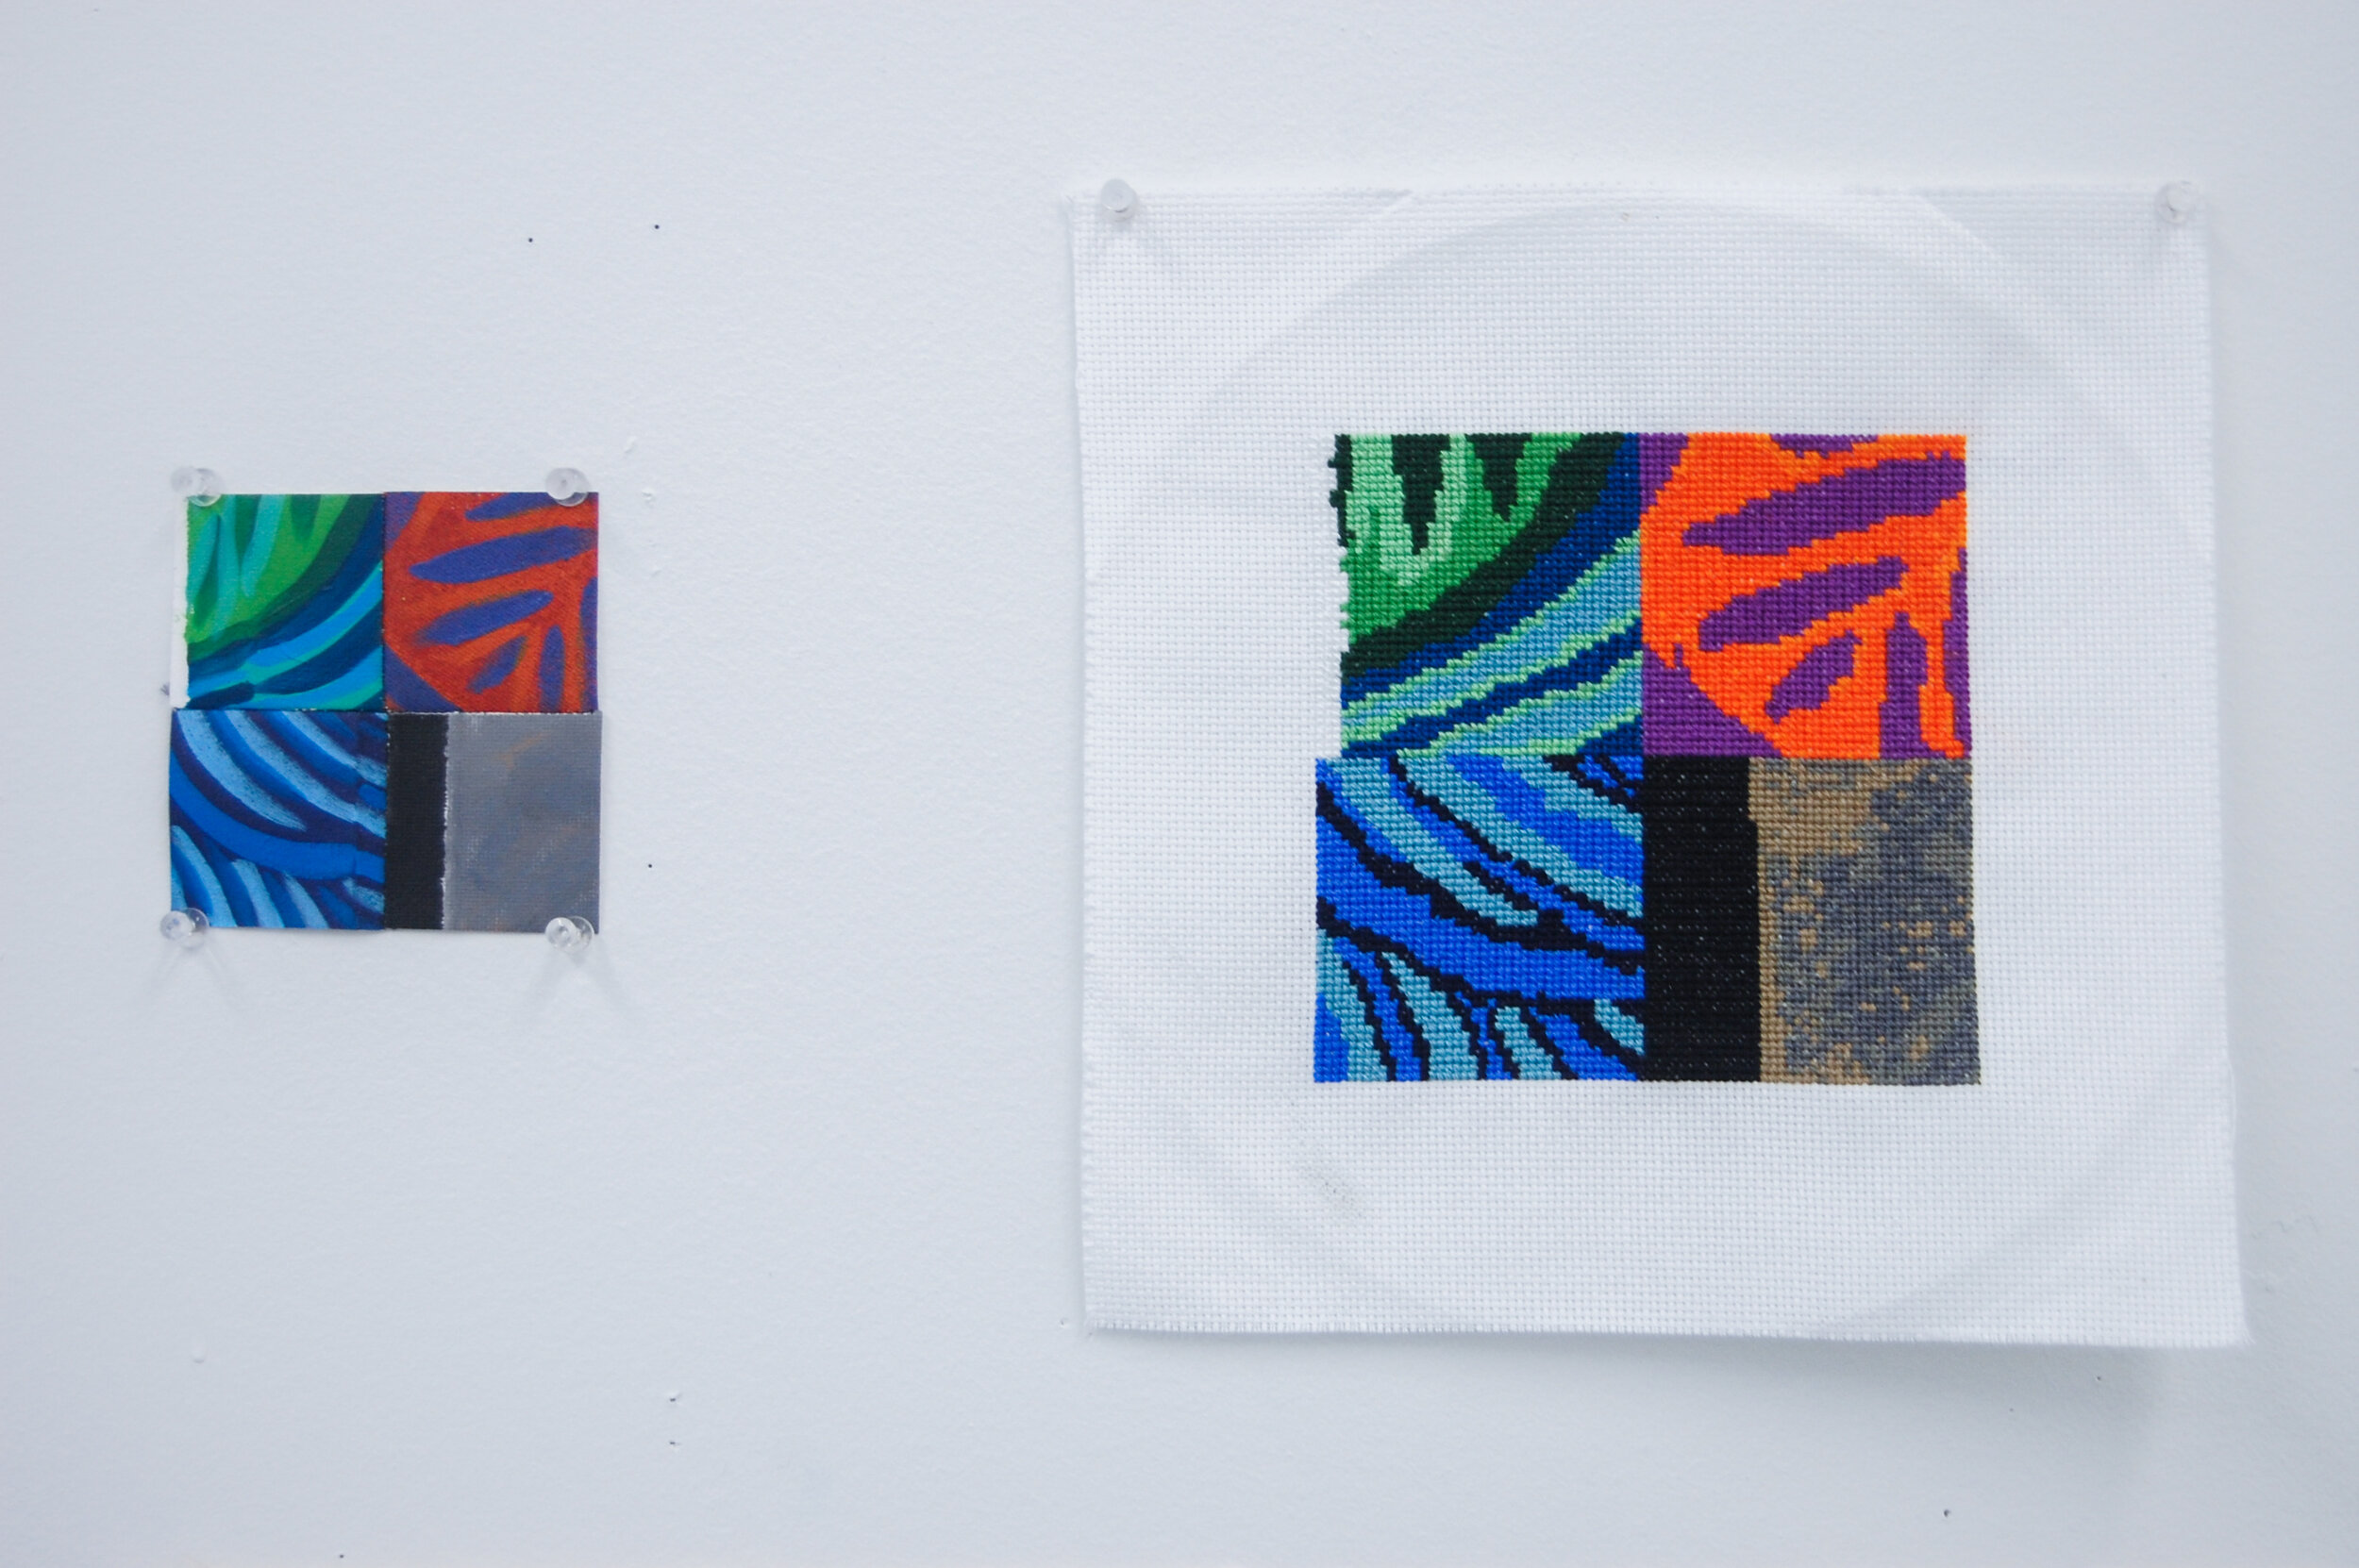 Translation #1 - Paint By Numbers,  2019, acrylic, canvas, embroidery floss, 4 x 4 inches and  Translation #1 - Cross-Stitch , 2019, embroidery floss, Aida cloth, 6 x 6 inches